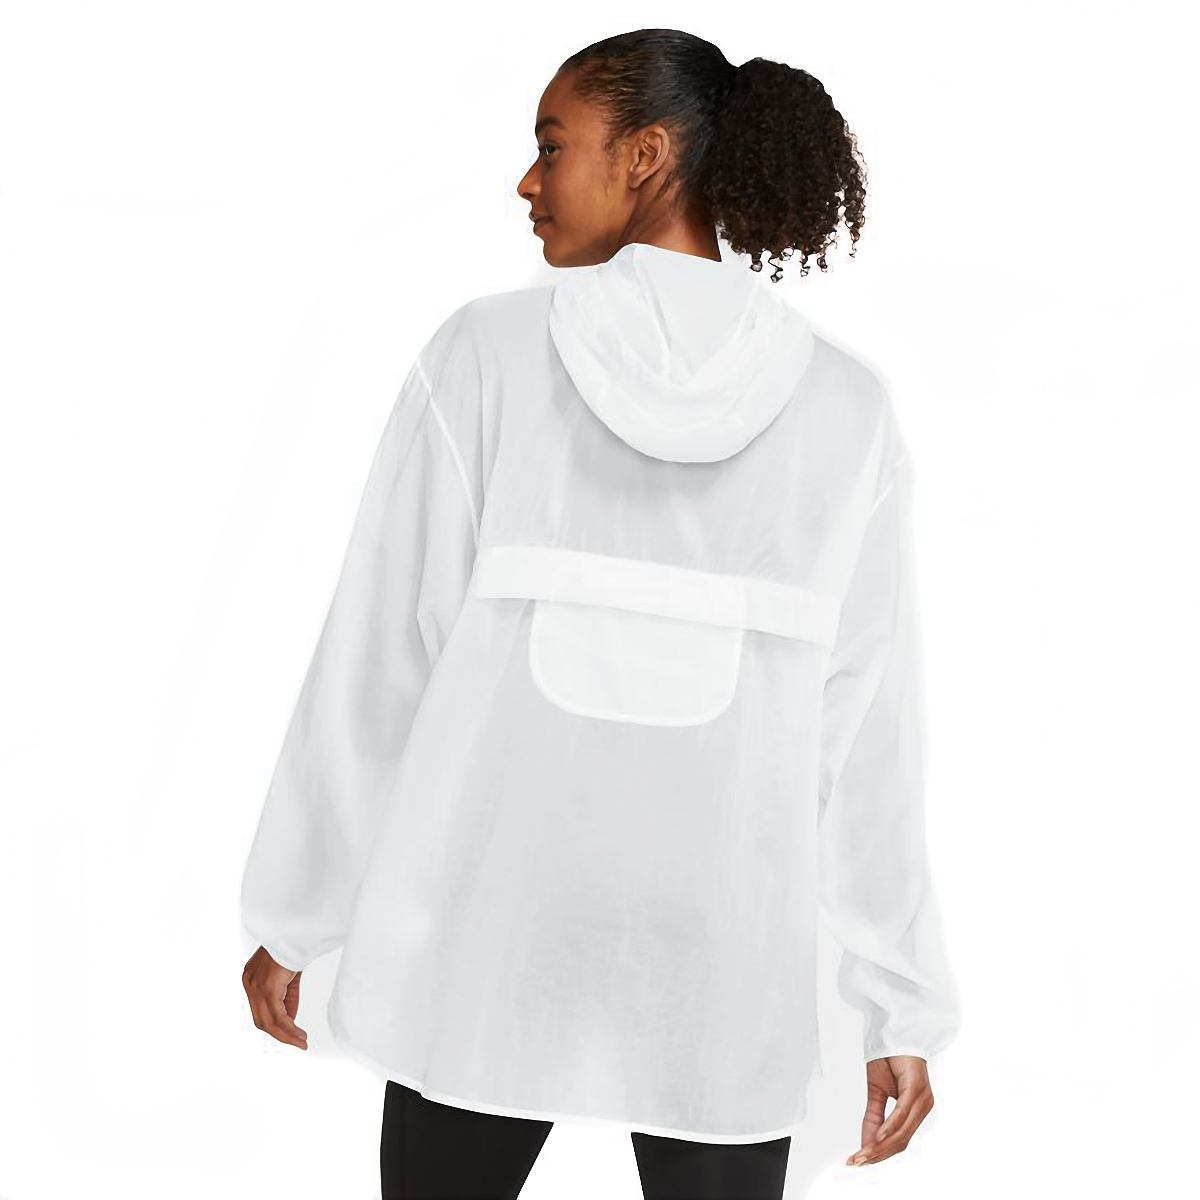 Women's Nike Run Division Package Running Jacket - Color: White/Black - Size: XS, White/Black, large, image 2